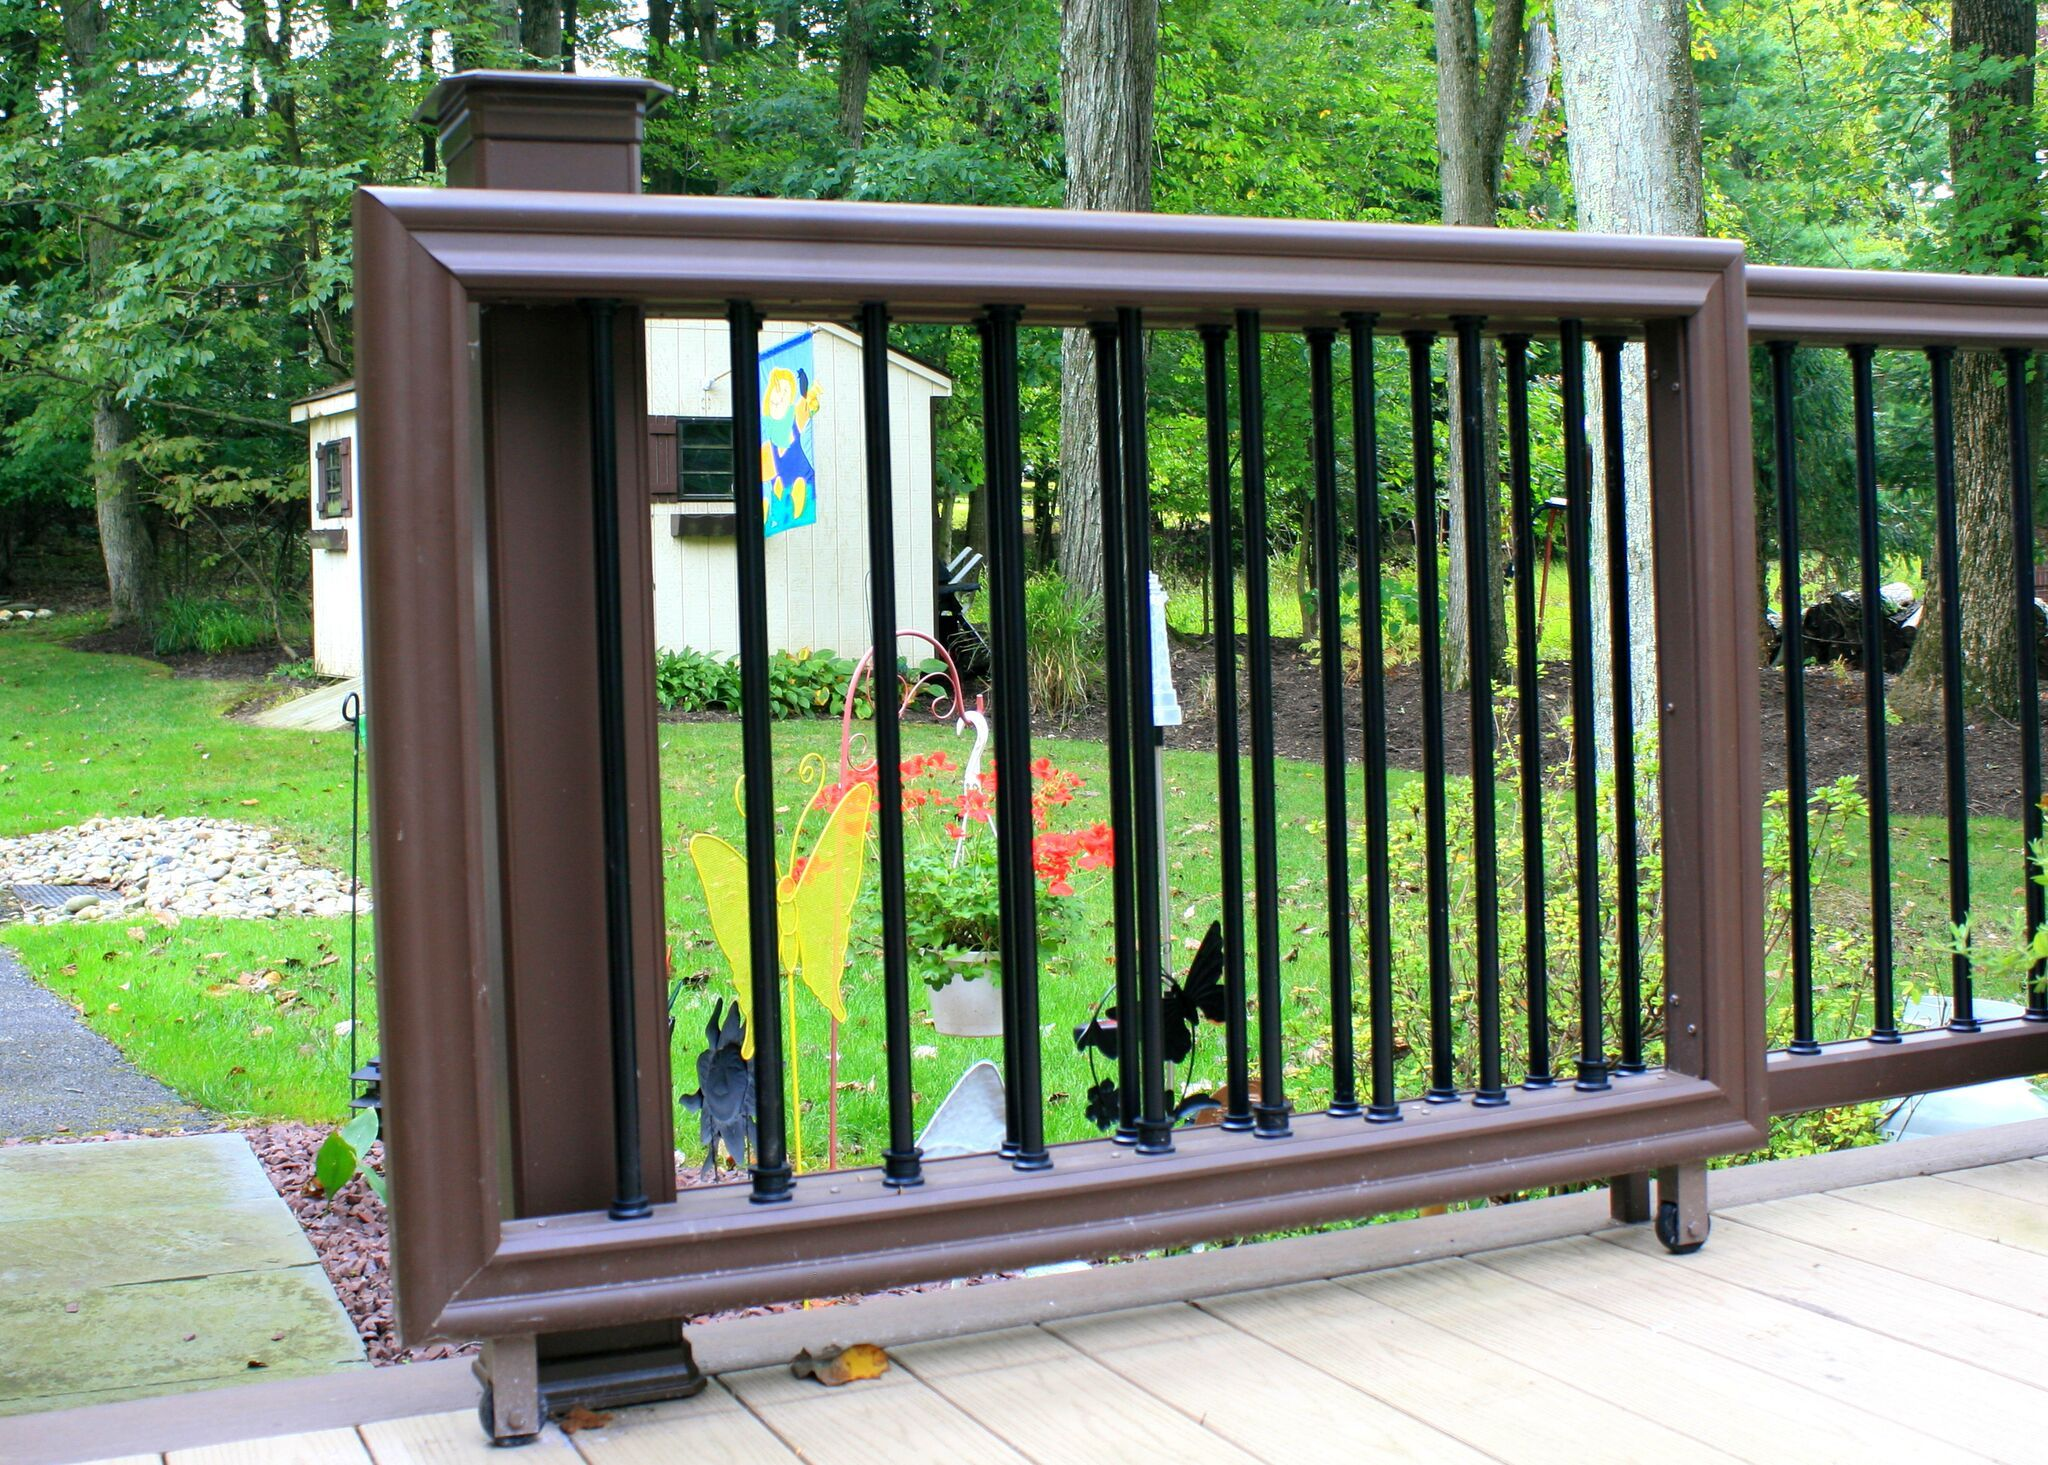 Sliding Wood Deck : In addition to decks and pergolas we can also build a